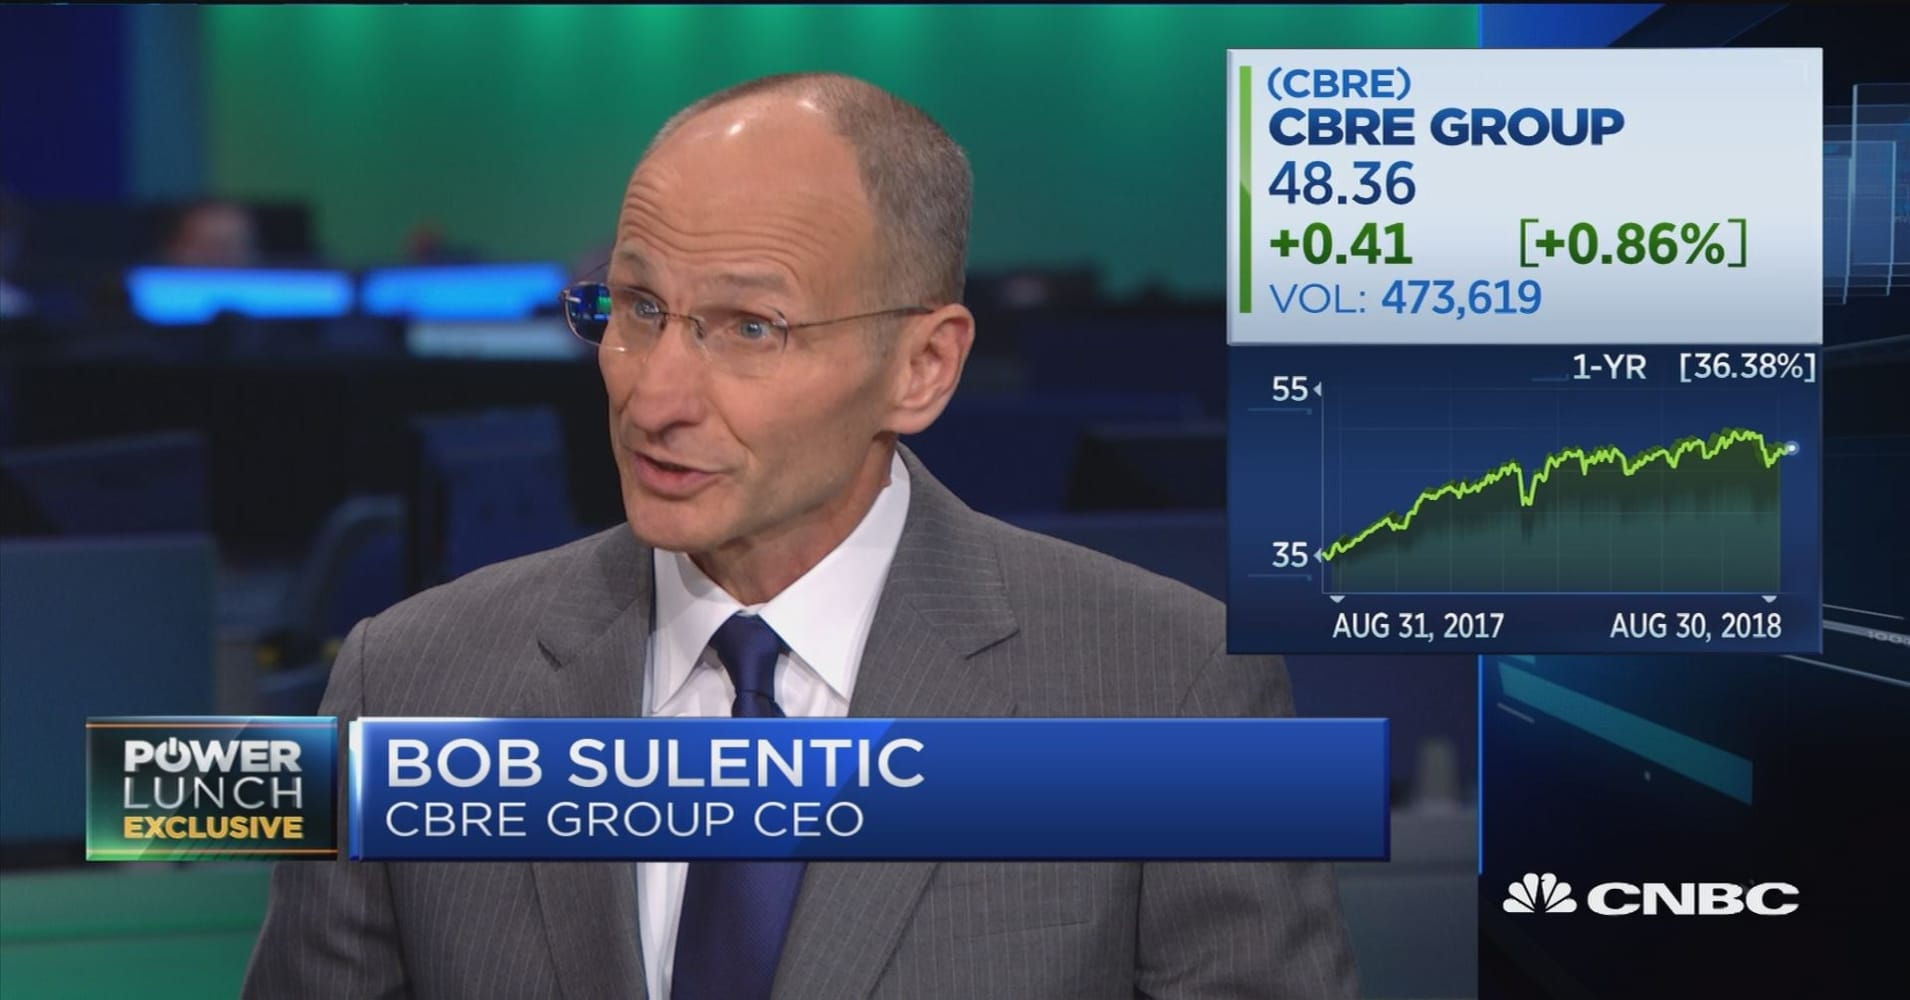 Retail industry not going away despite negative headlines, CBRE CEO says